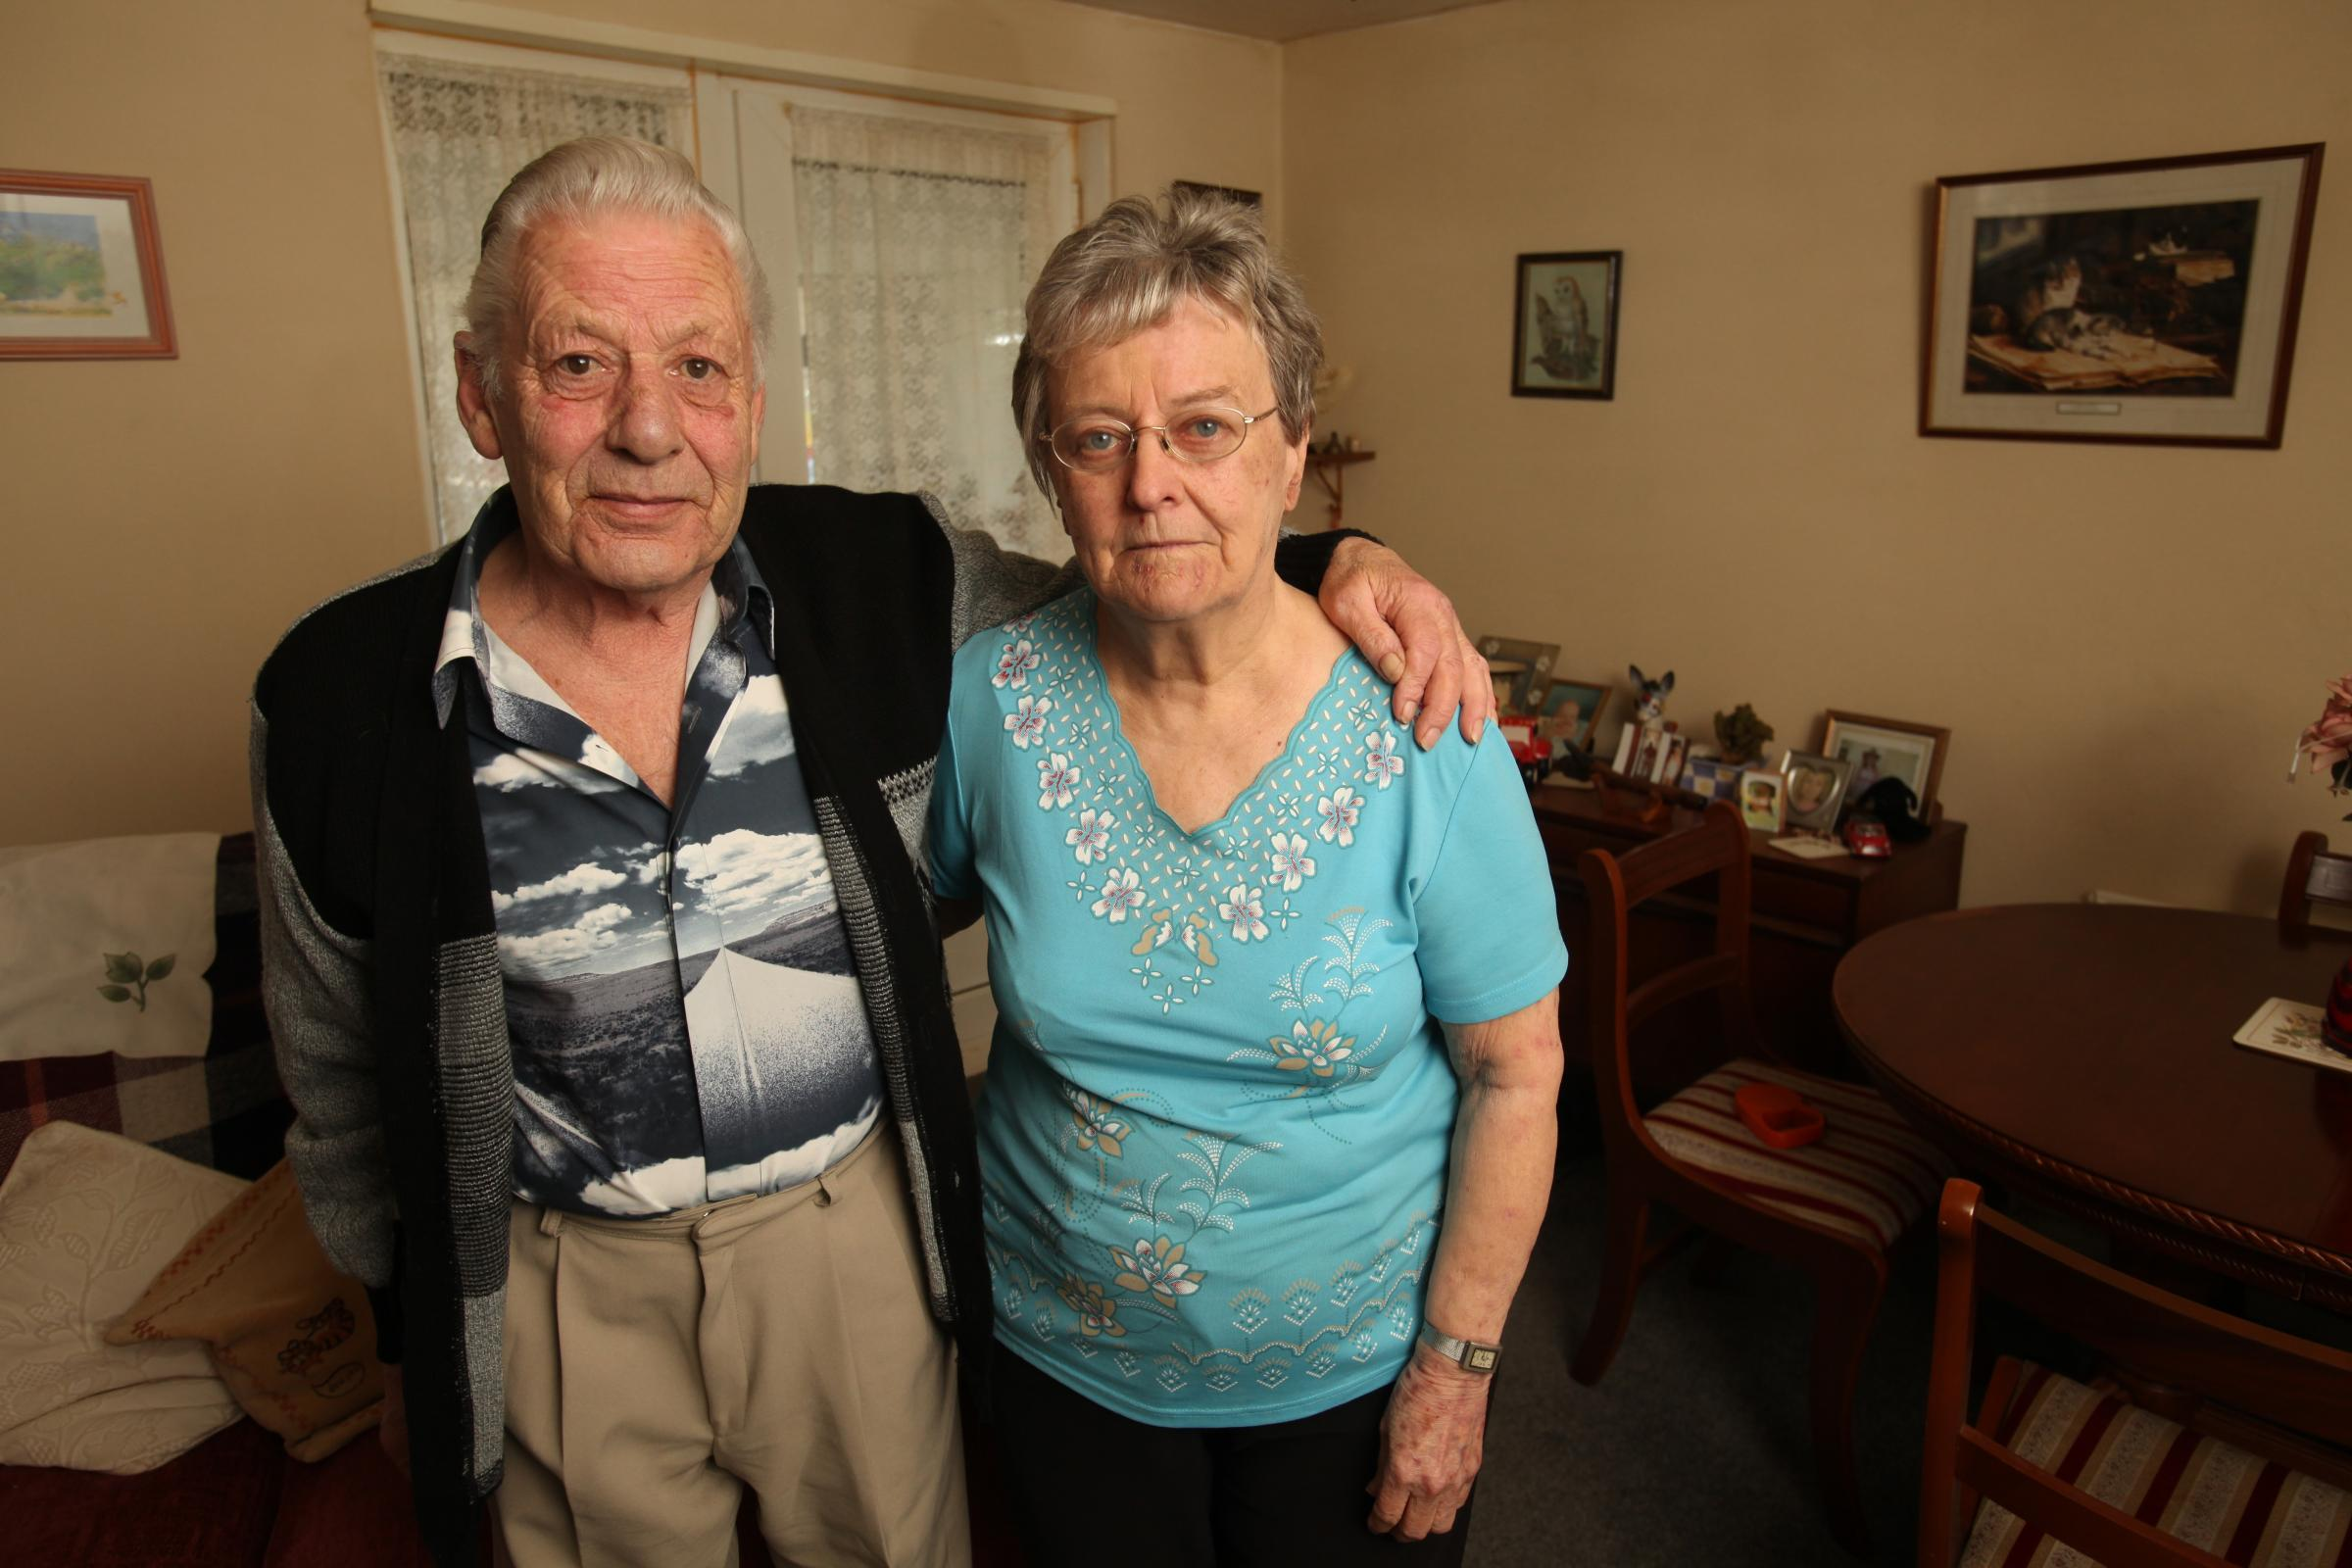 Jim and Valerie Gorman could lose out on vital time at a Southampton day centre due to price increases